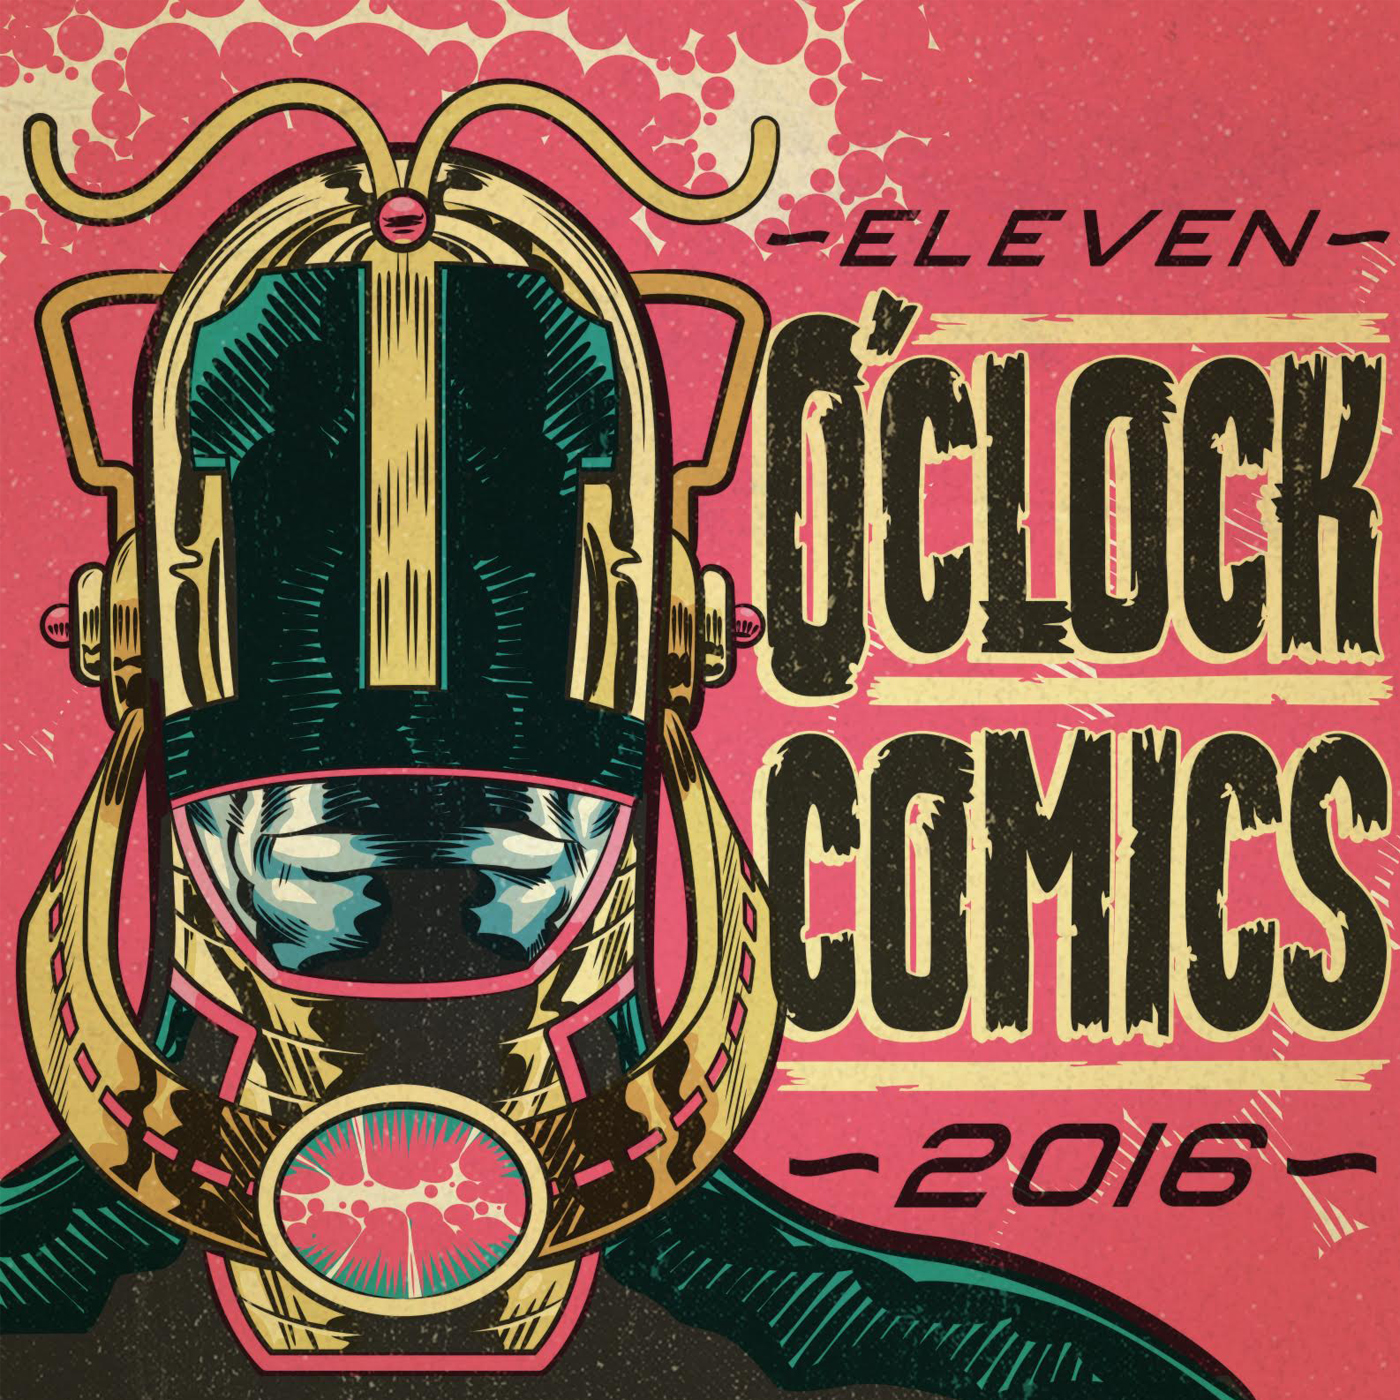 11 O'Clock Comics Episode 436